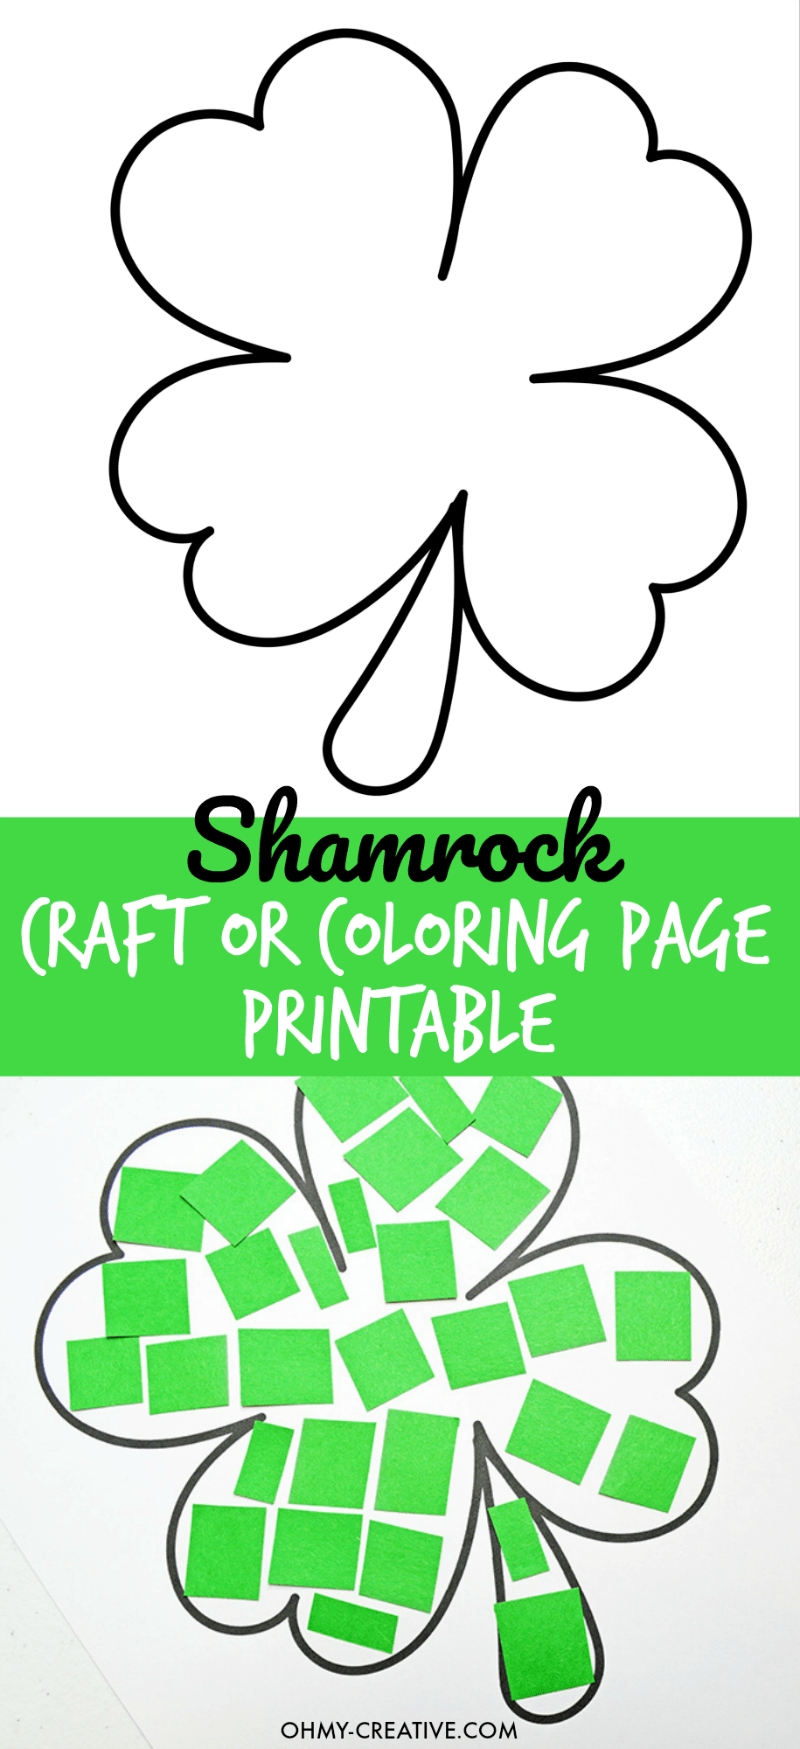 photograph regarding Free Printable Shamrock Template identify Slice And Paste Shamrock Template or Coloring Web page - Oh My